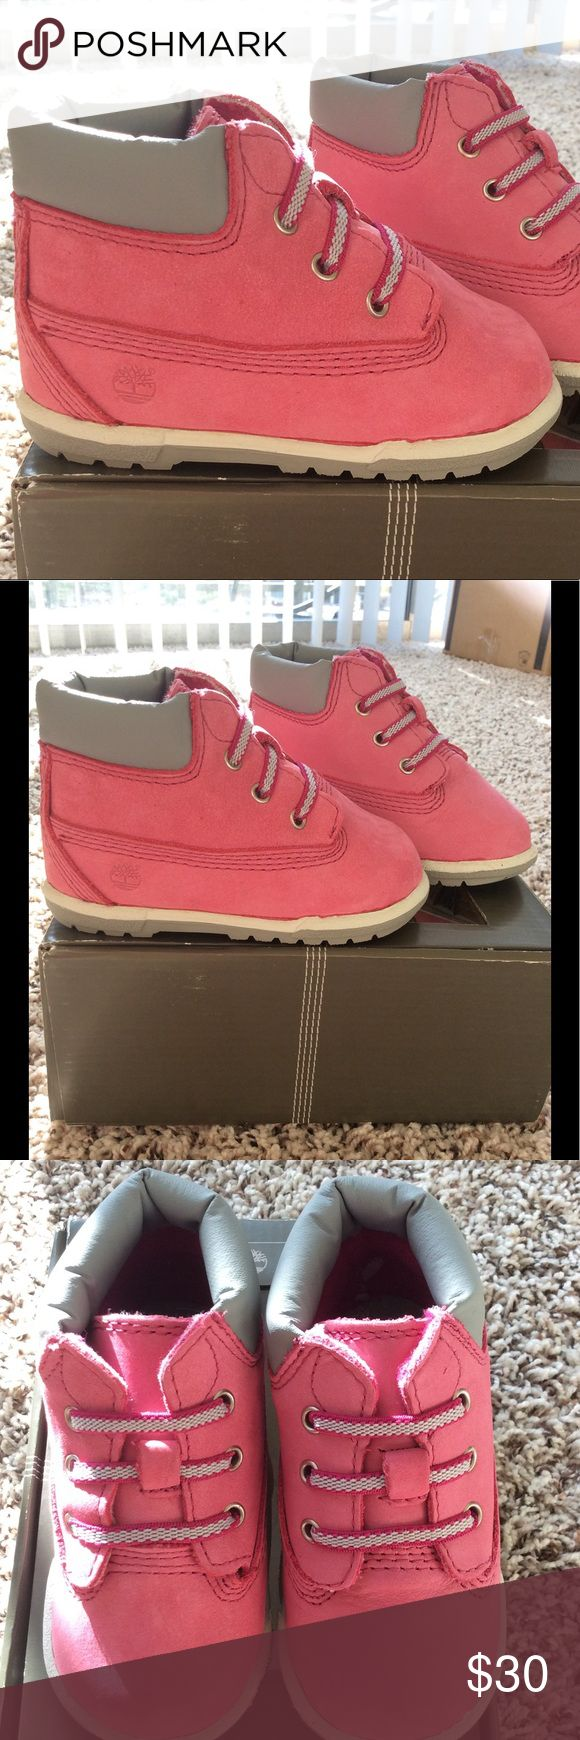 Infant Girl's Timberland Boots Adorable! Fuchsia pink nubuck leather. Gray rubber sole. Elastic, nonfunctional laces. Pull on. Removable insole to help determine fit. New without tags. Timberland Shoes Baby & Walker